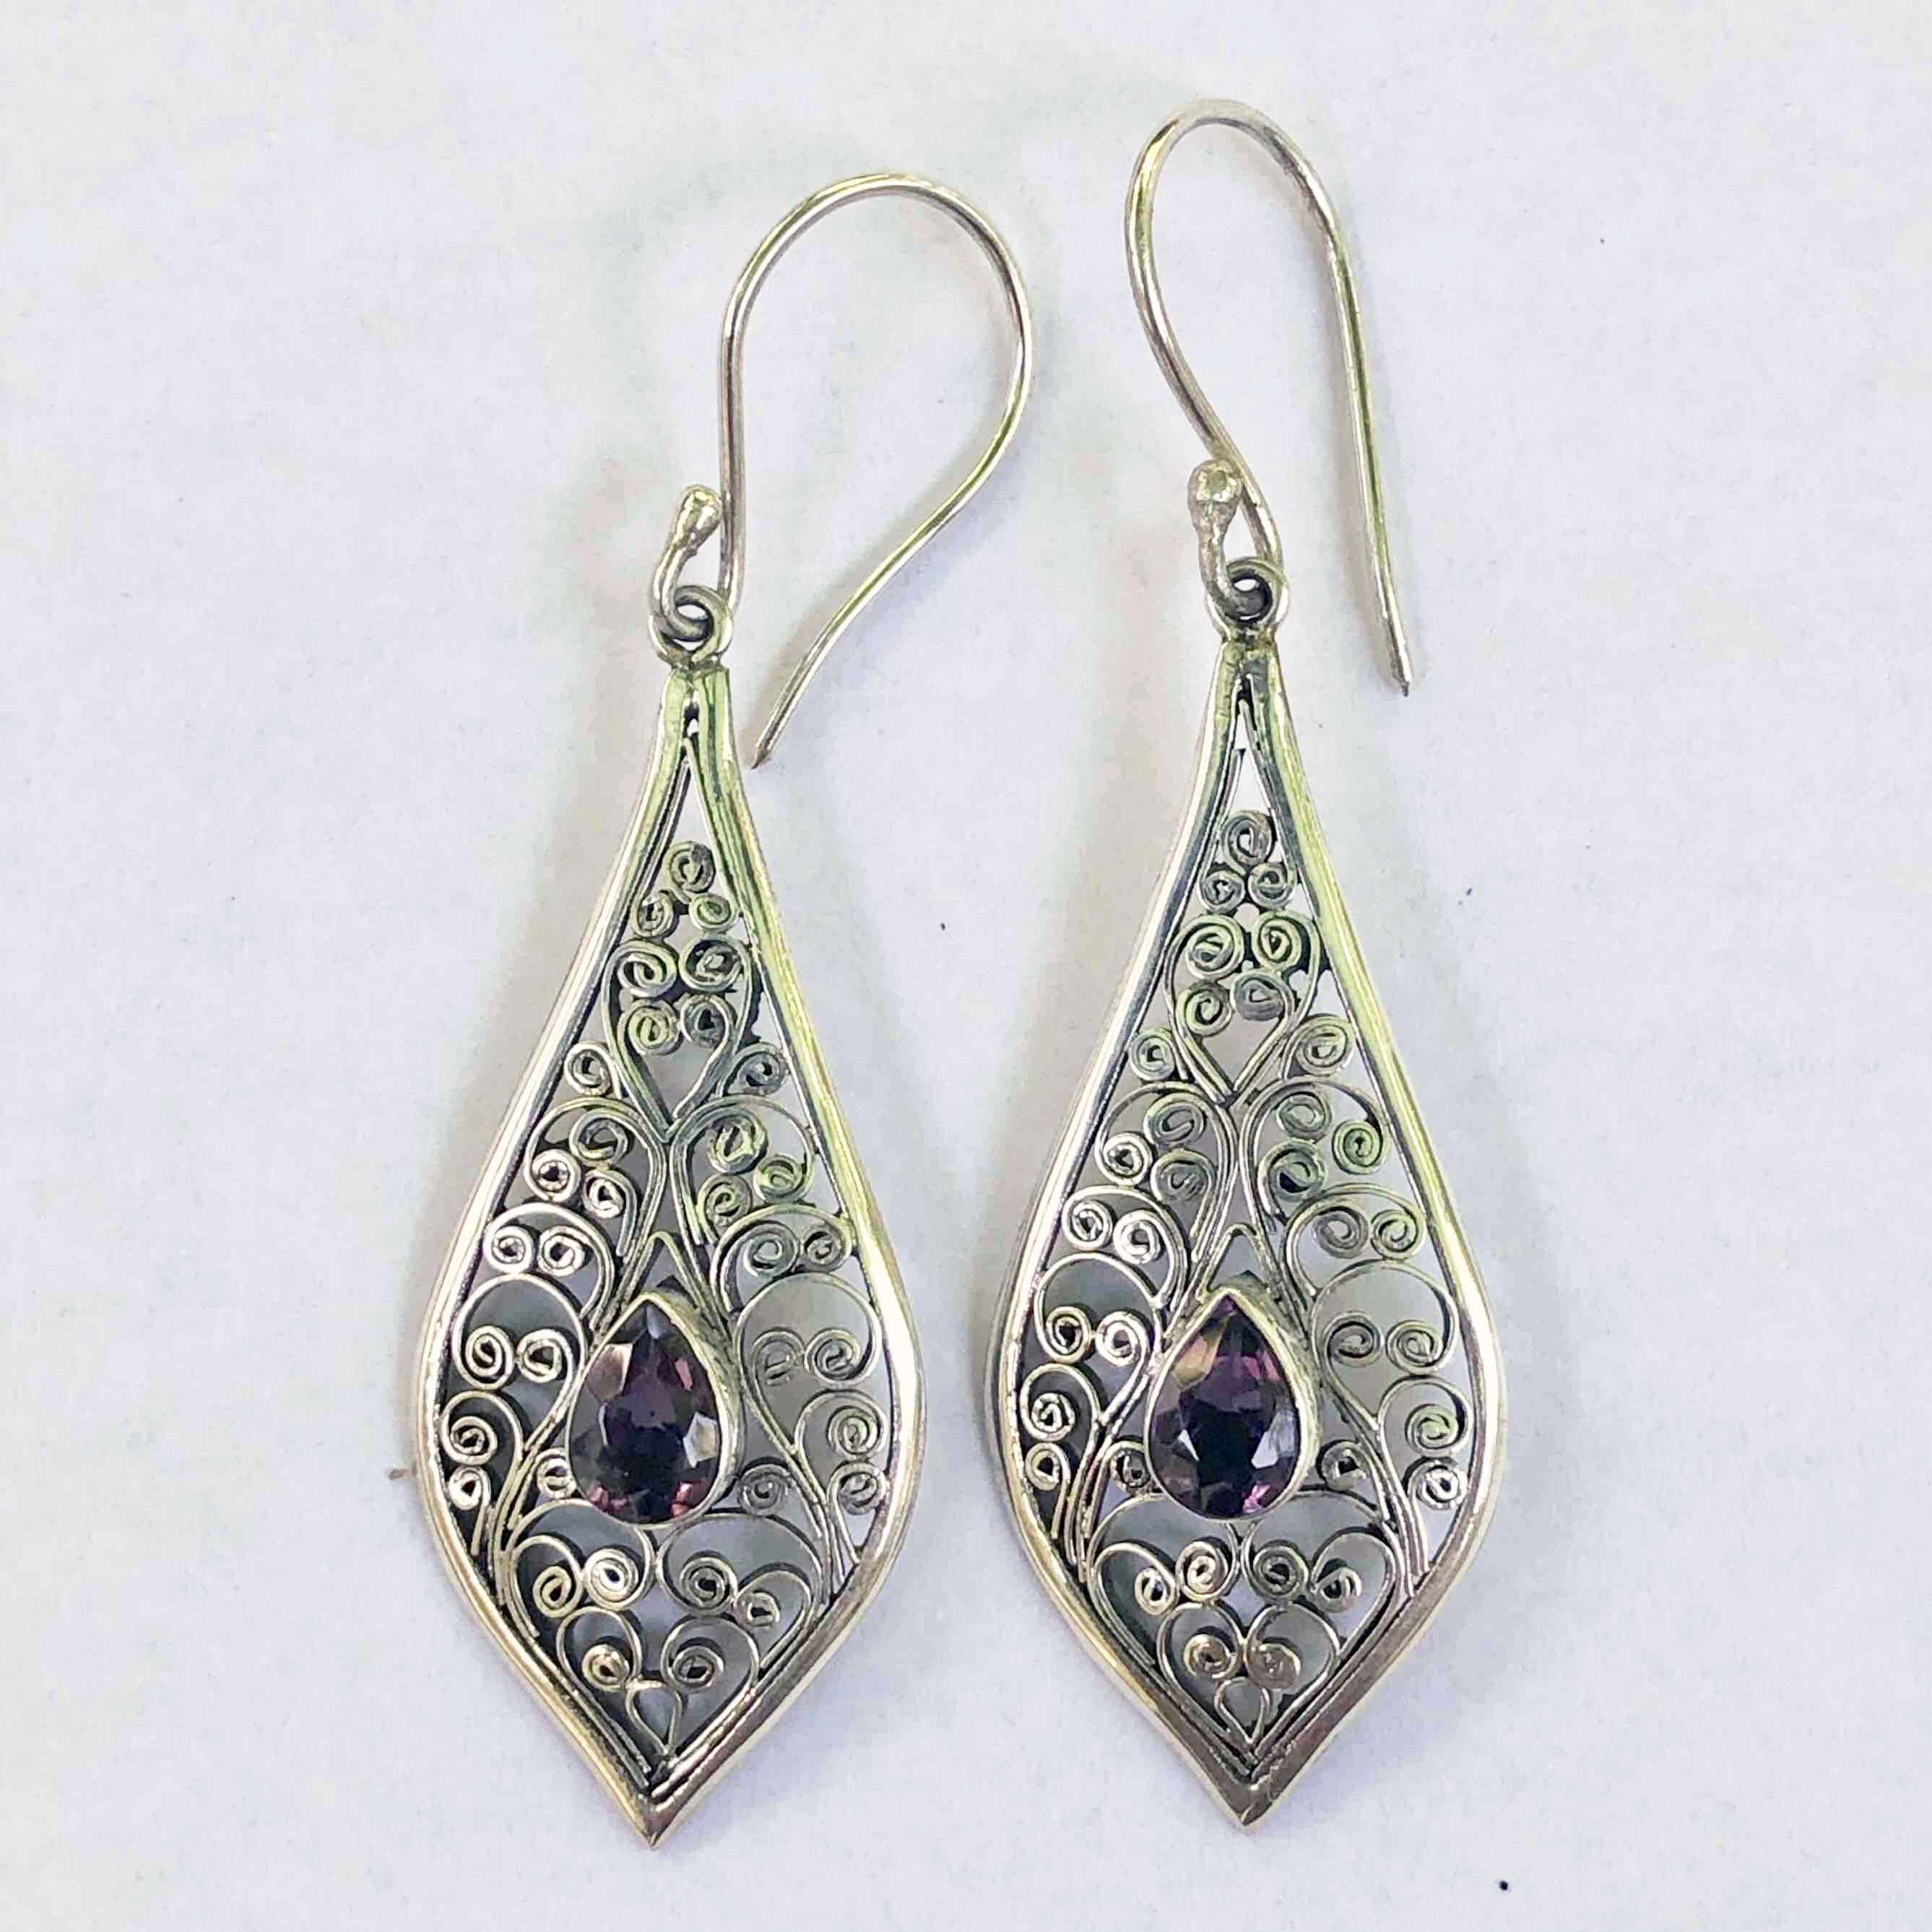 (UNIQUE 925 BALI SILVER FILIGREE EARRINGS WITH AMETHYST)